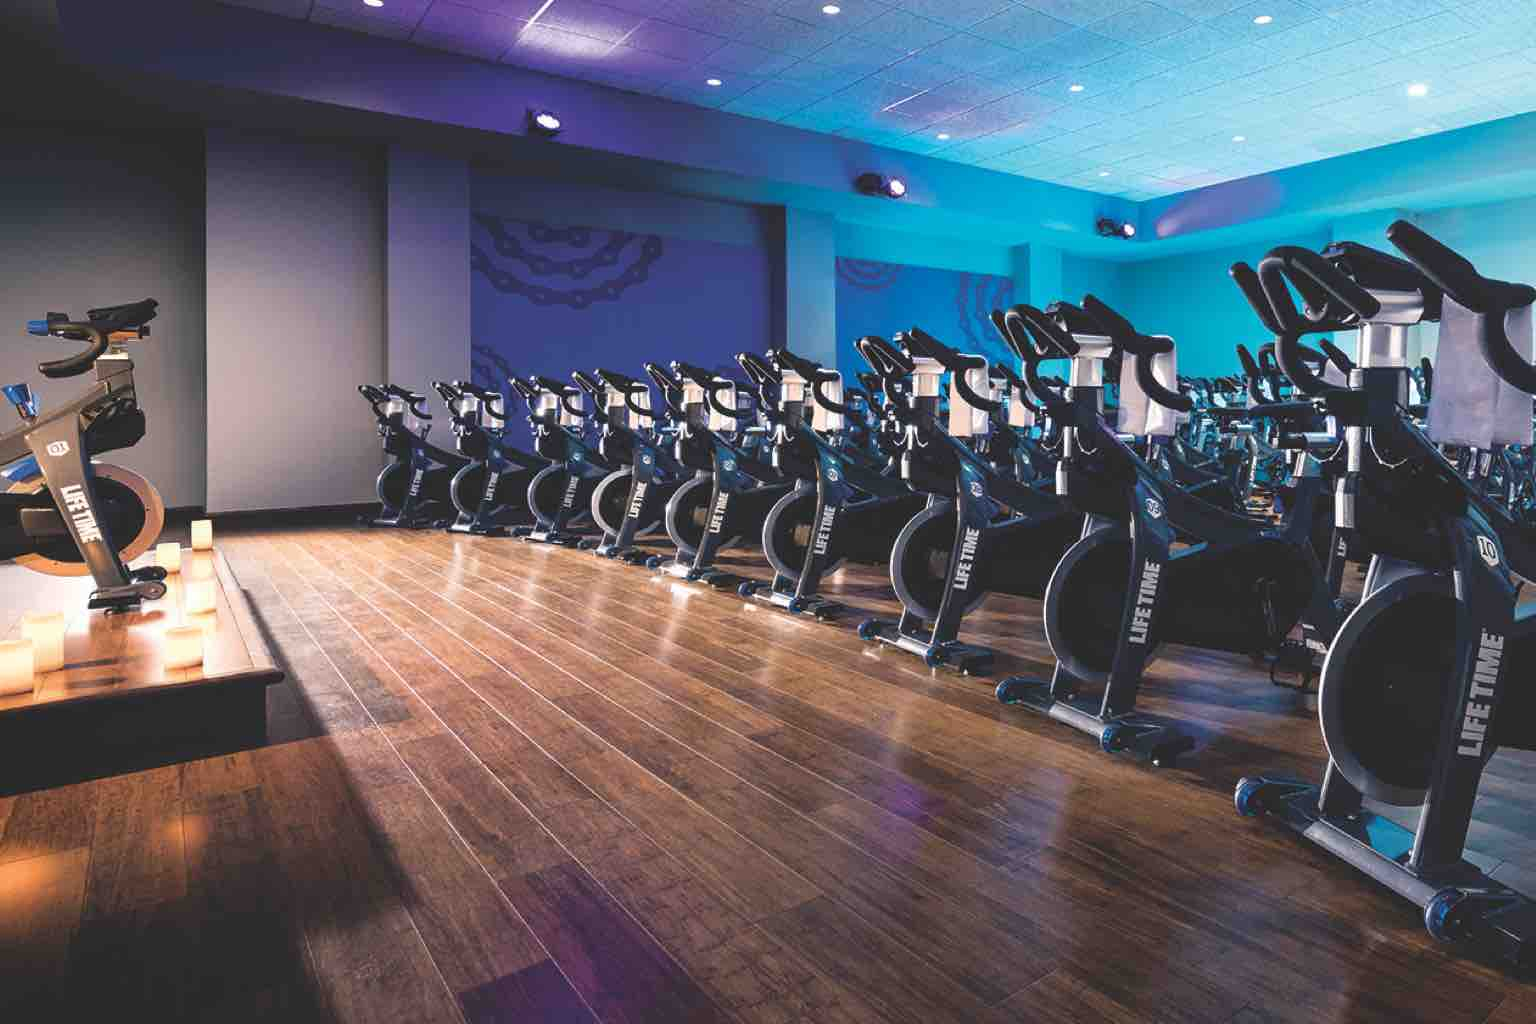 Rows of state-of-the-art stationary bikes face the instructor's platform in a purple- and blue-lit cycle studio